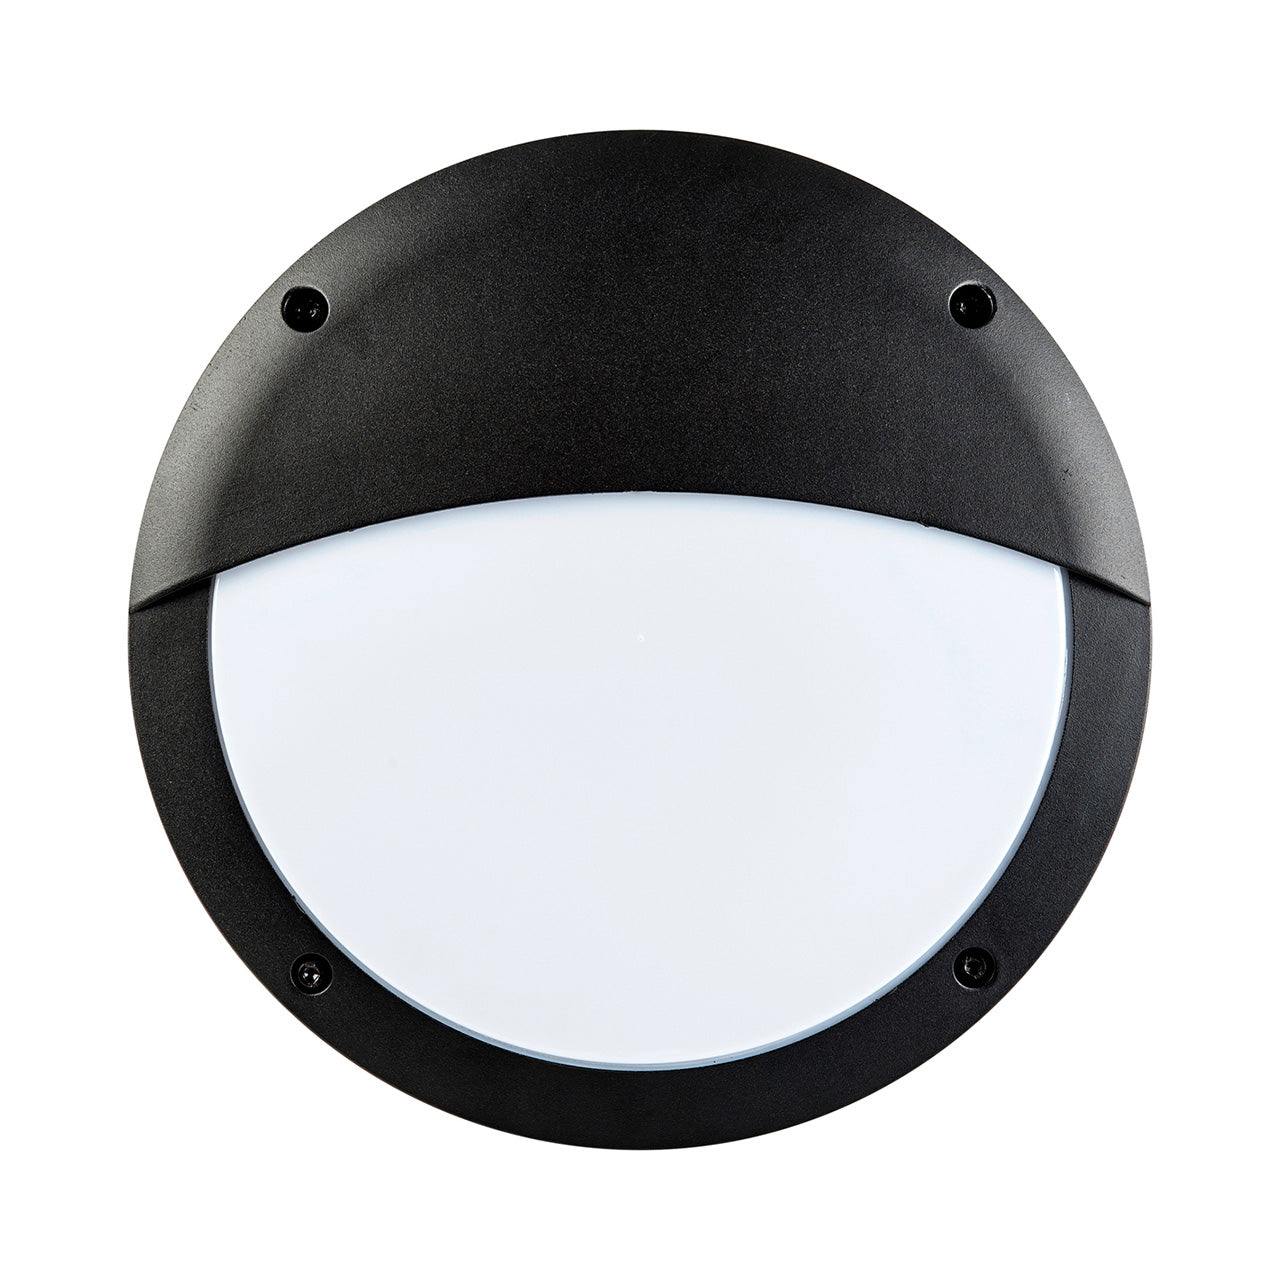 HV3671C-BLK  - STOR Black LED Bunker Light with Eyelid